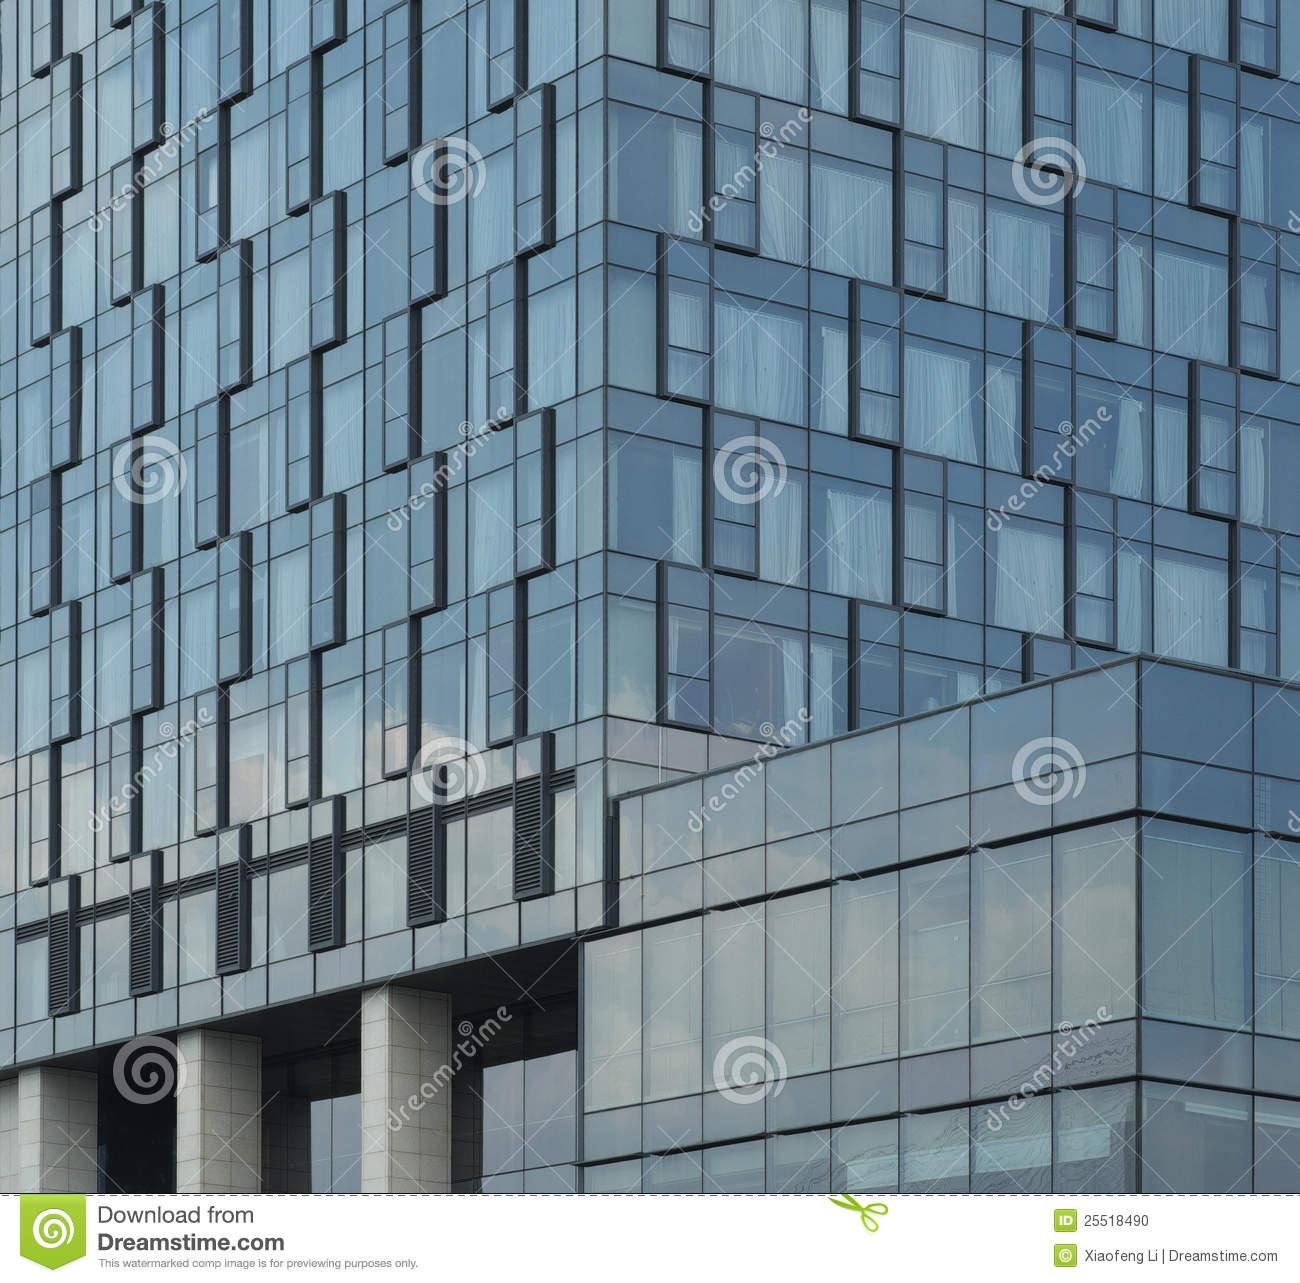 Modern Architecture Hotel glass walls of modern hotel architecture stock photo - image: 25518490